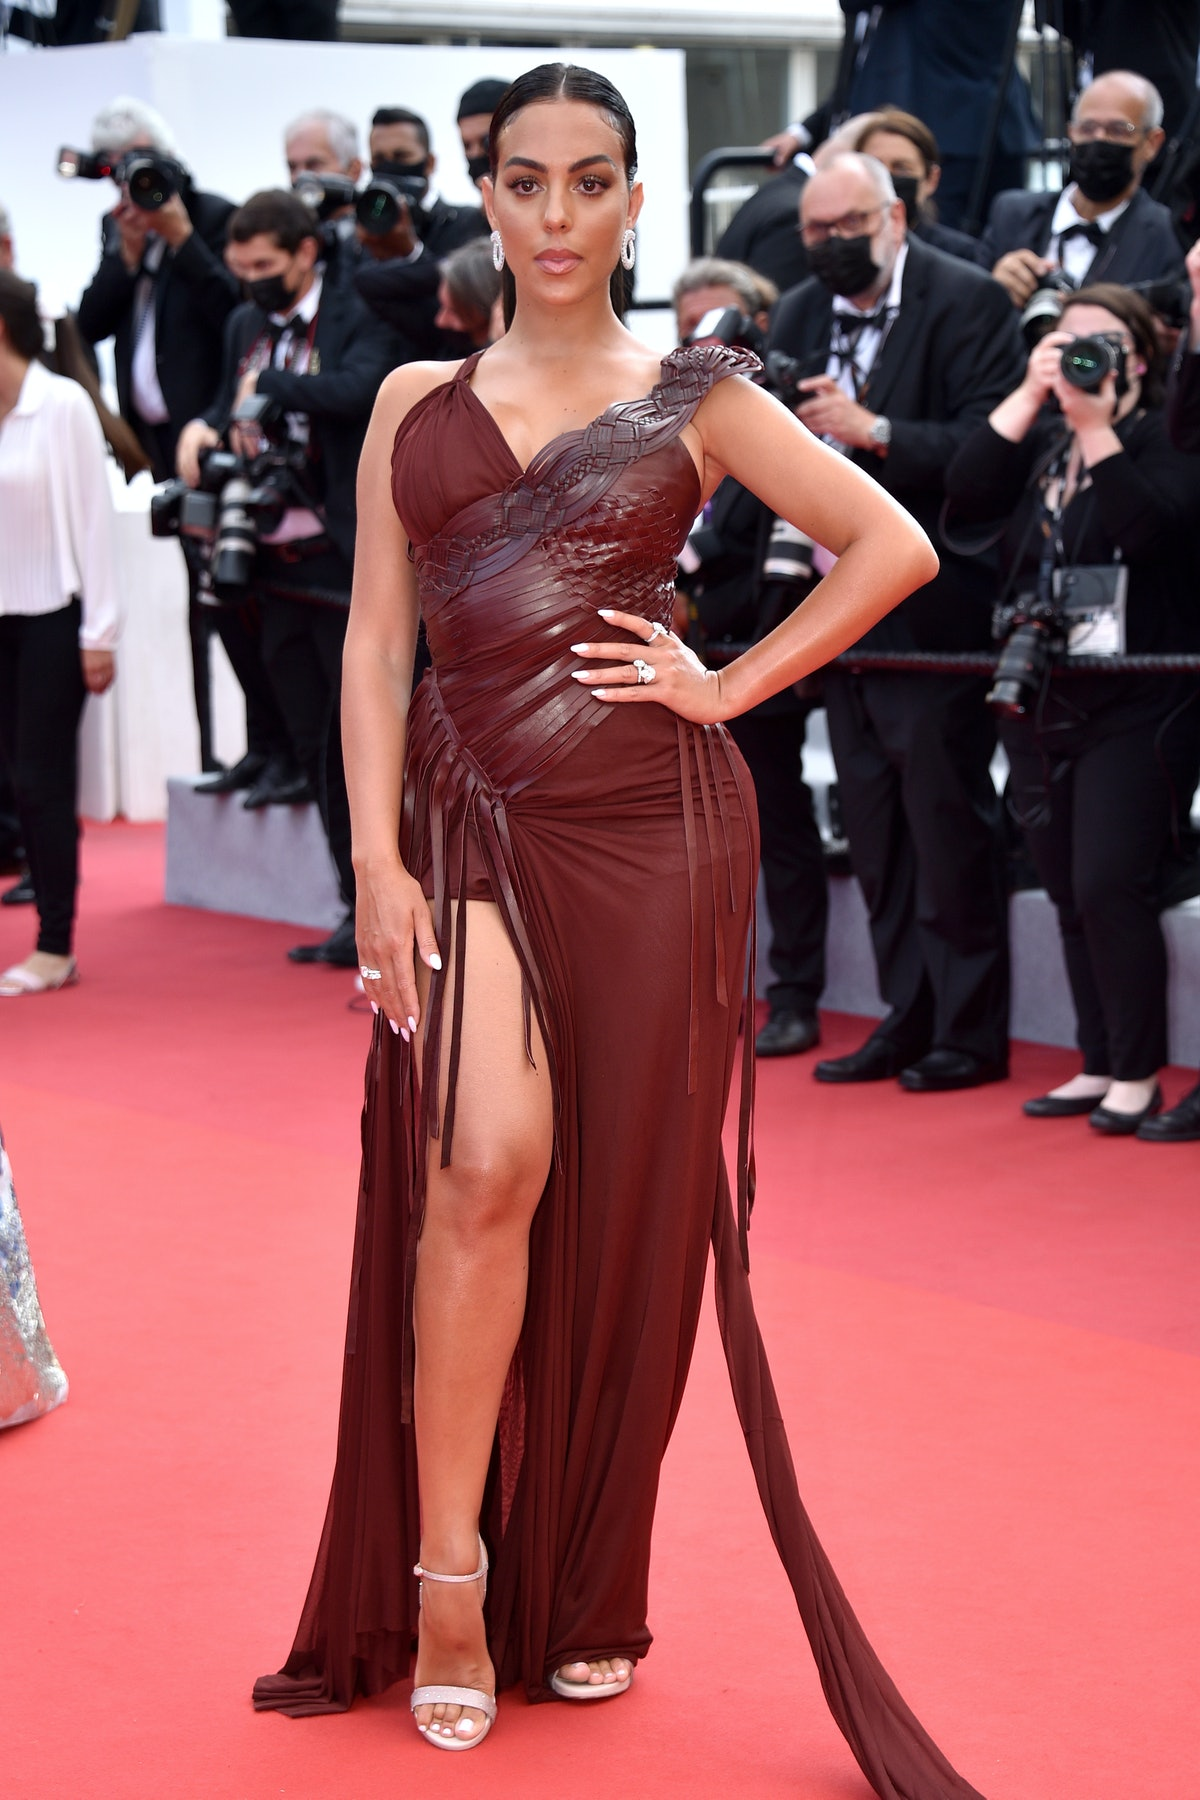 """CANNES, FRANCE - JULY 15: Georgina Rodriguez attends the """"France"""" screening during the 74th annual Cannes Film Festival on July 15, 2021 in Cannes, France. (Photo by Lionel Hahn/Getty Images)"""